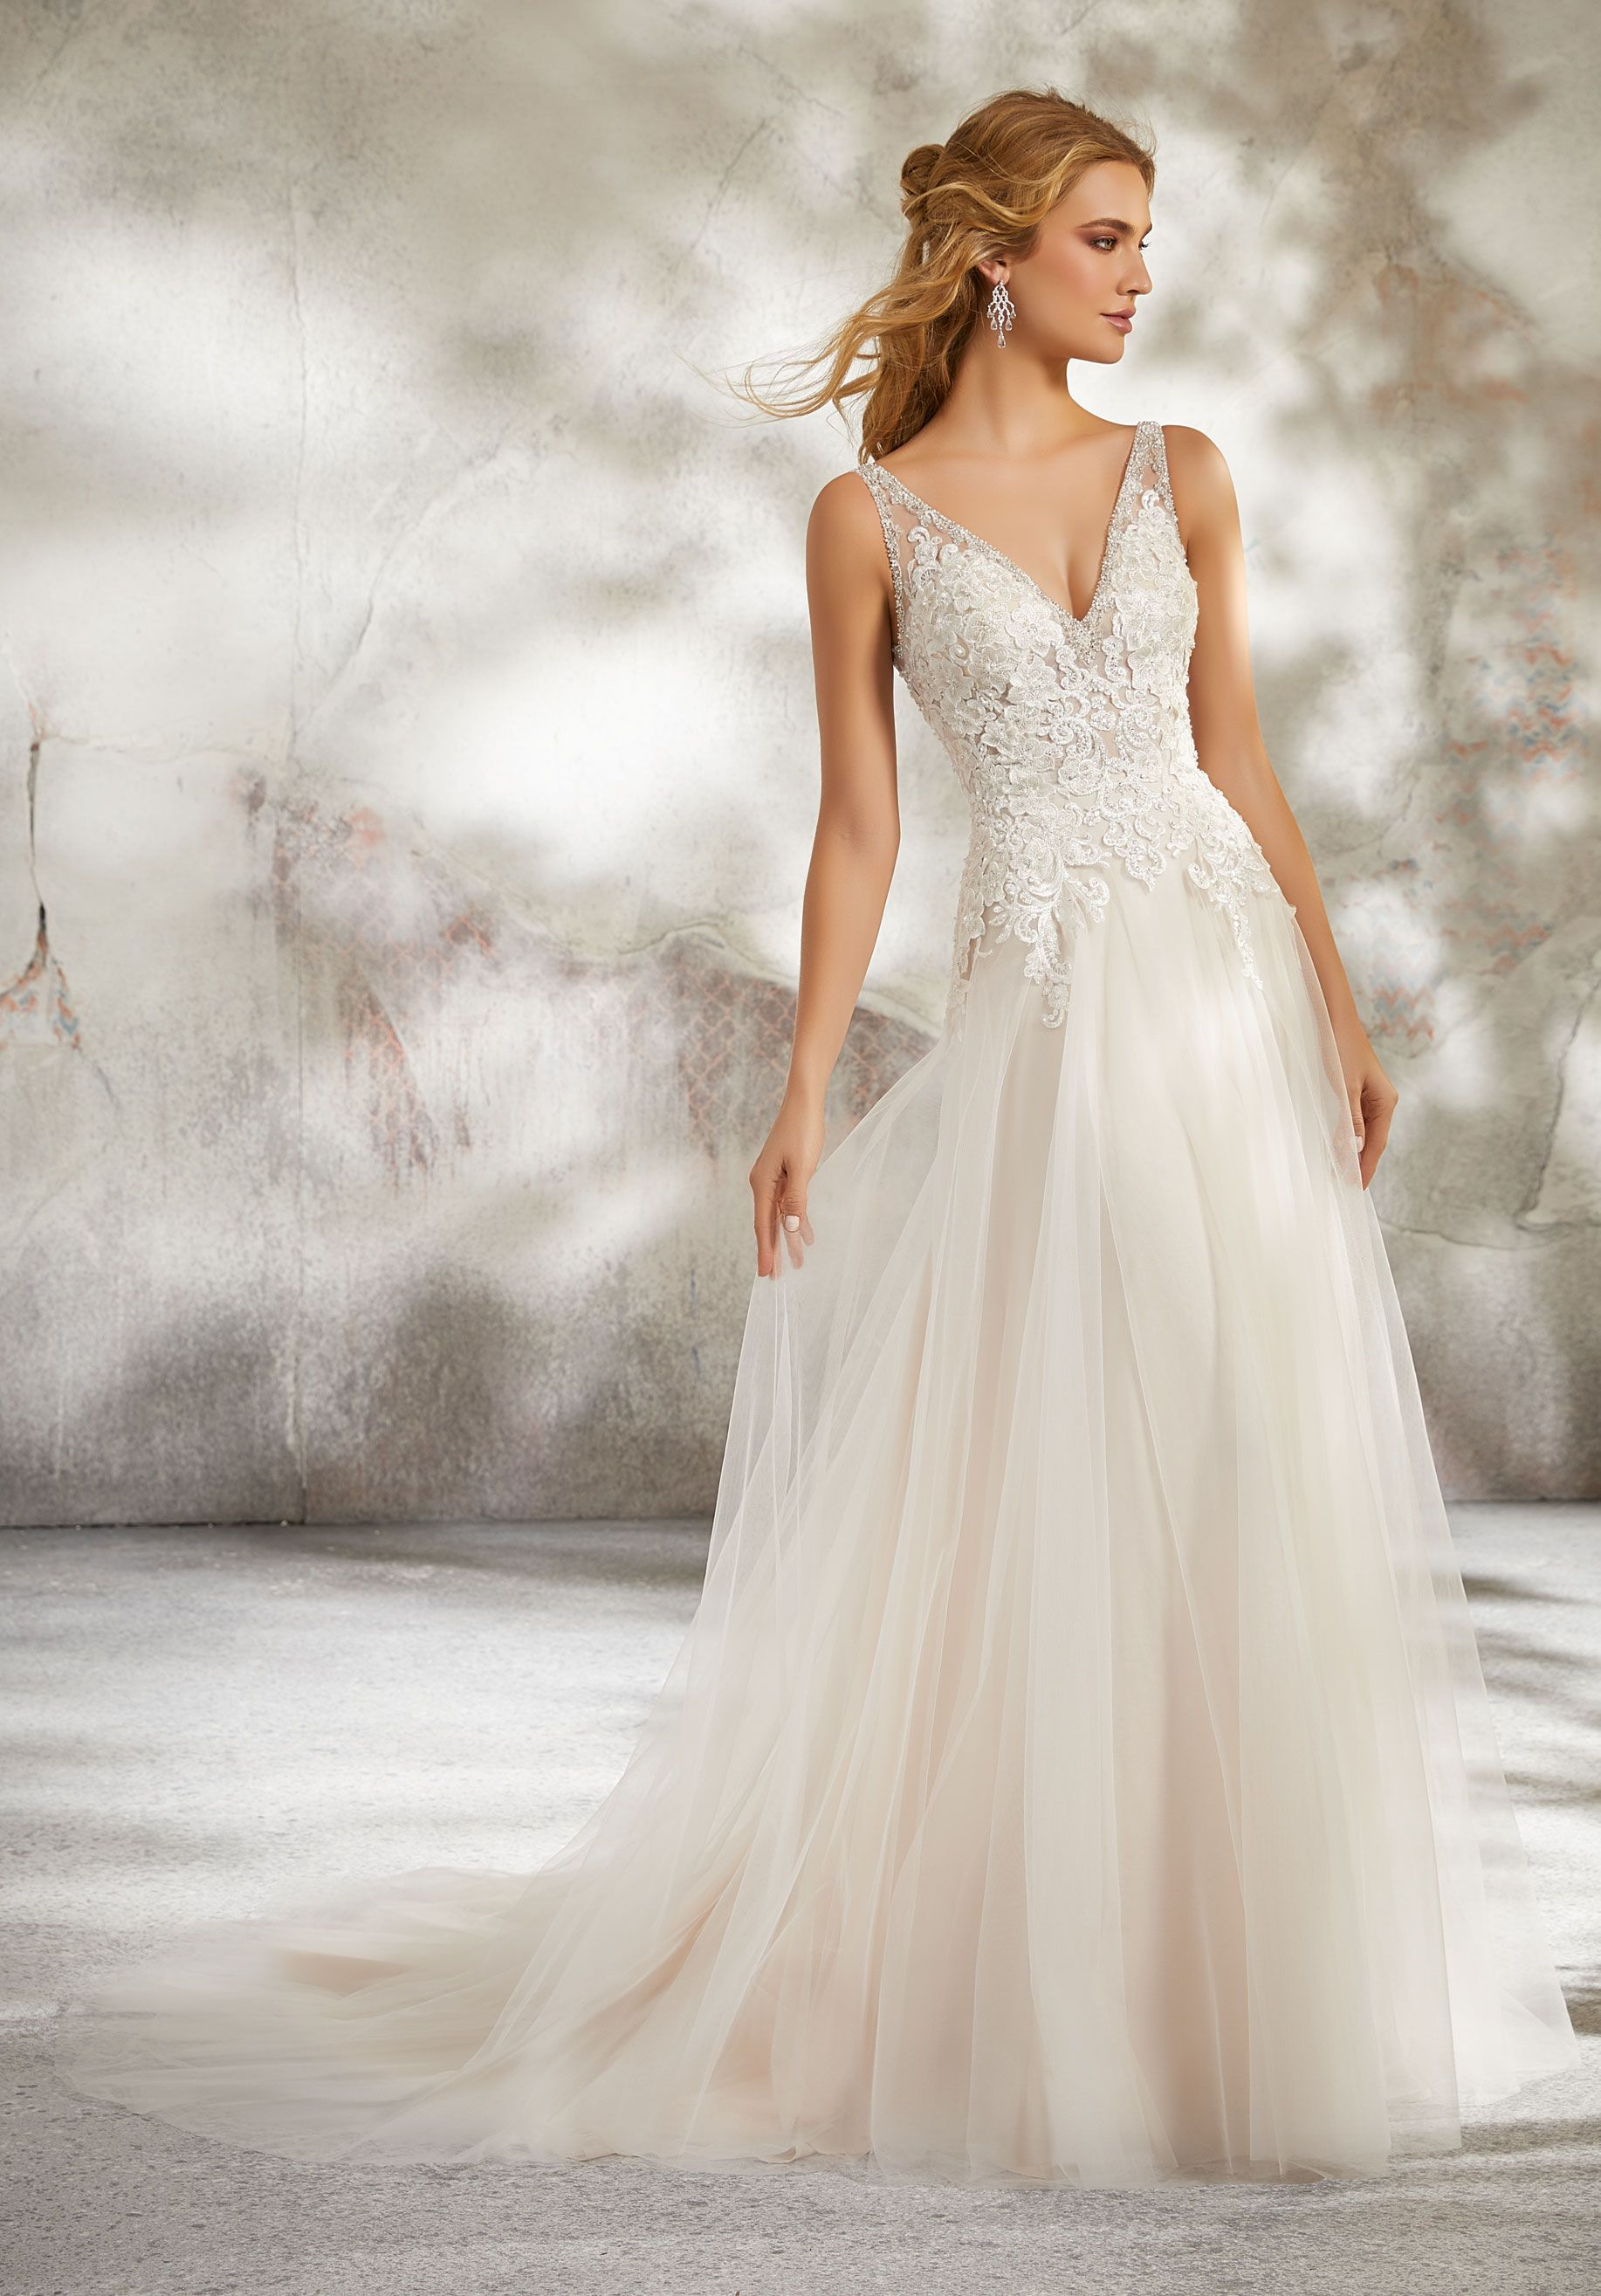 Luana wedding dress style morilee weddingdress wedding